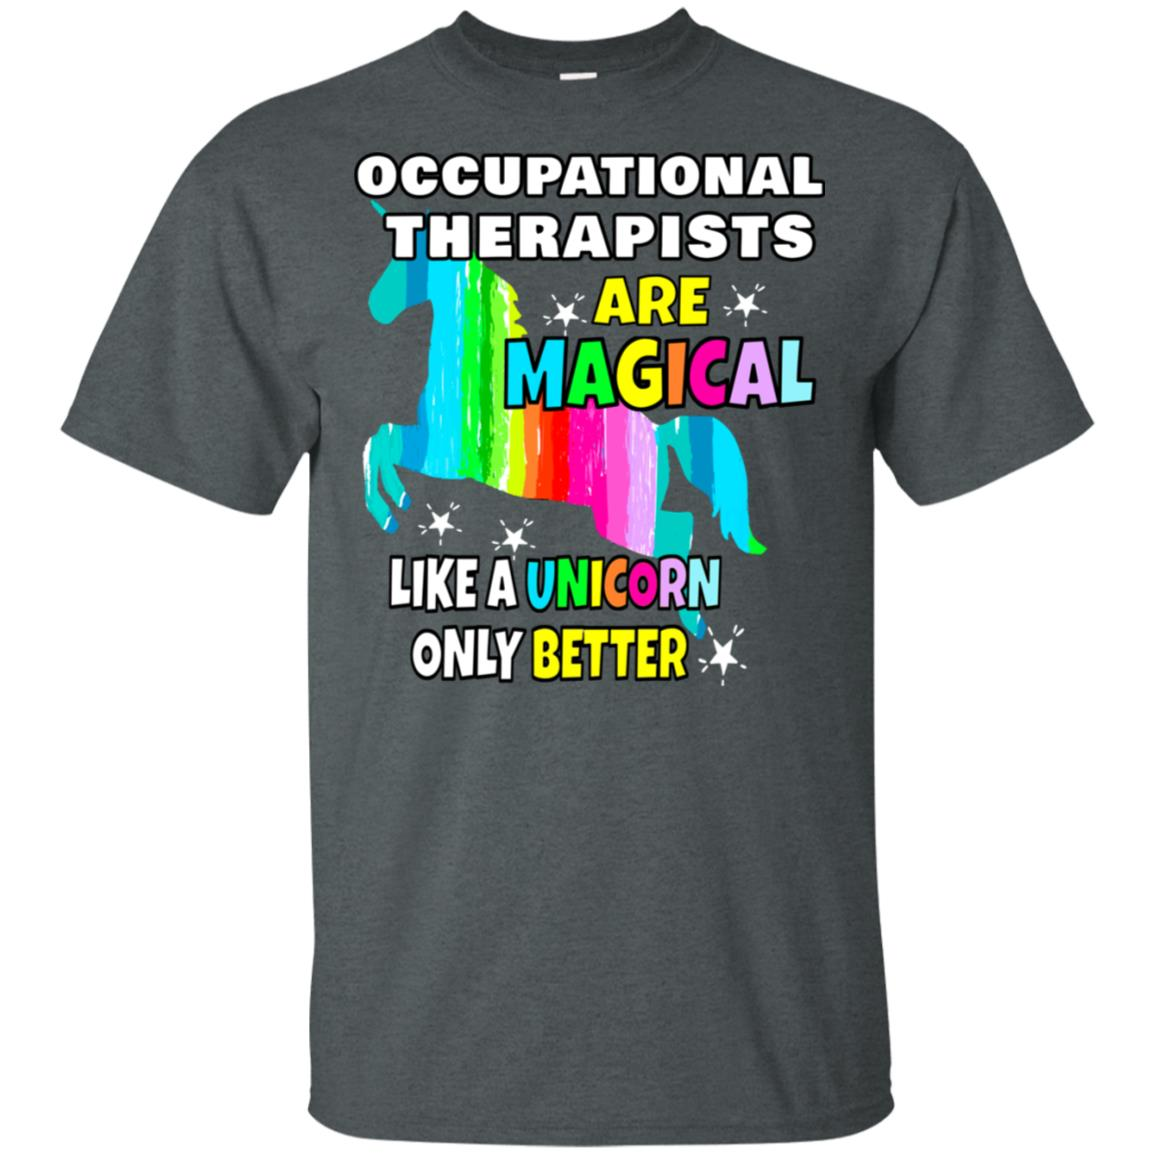 Occupational Therapists Magical Like a Unicorn Unisex Short Sleeve